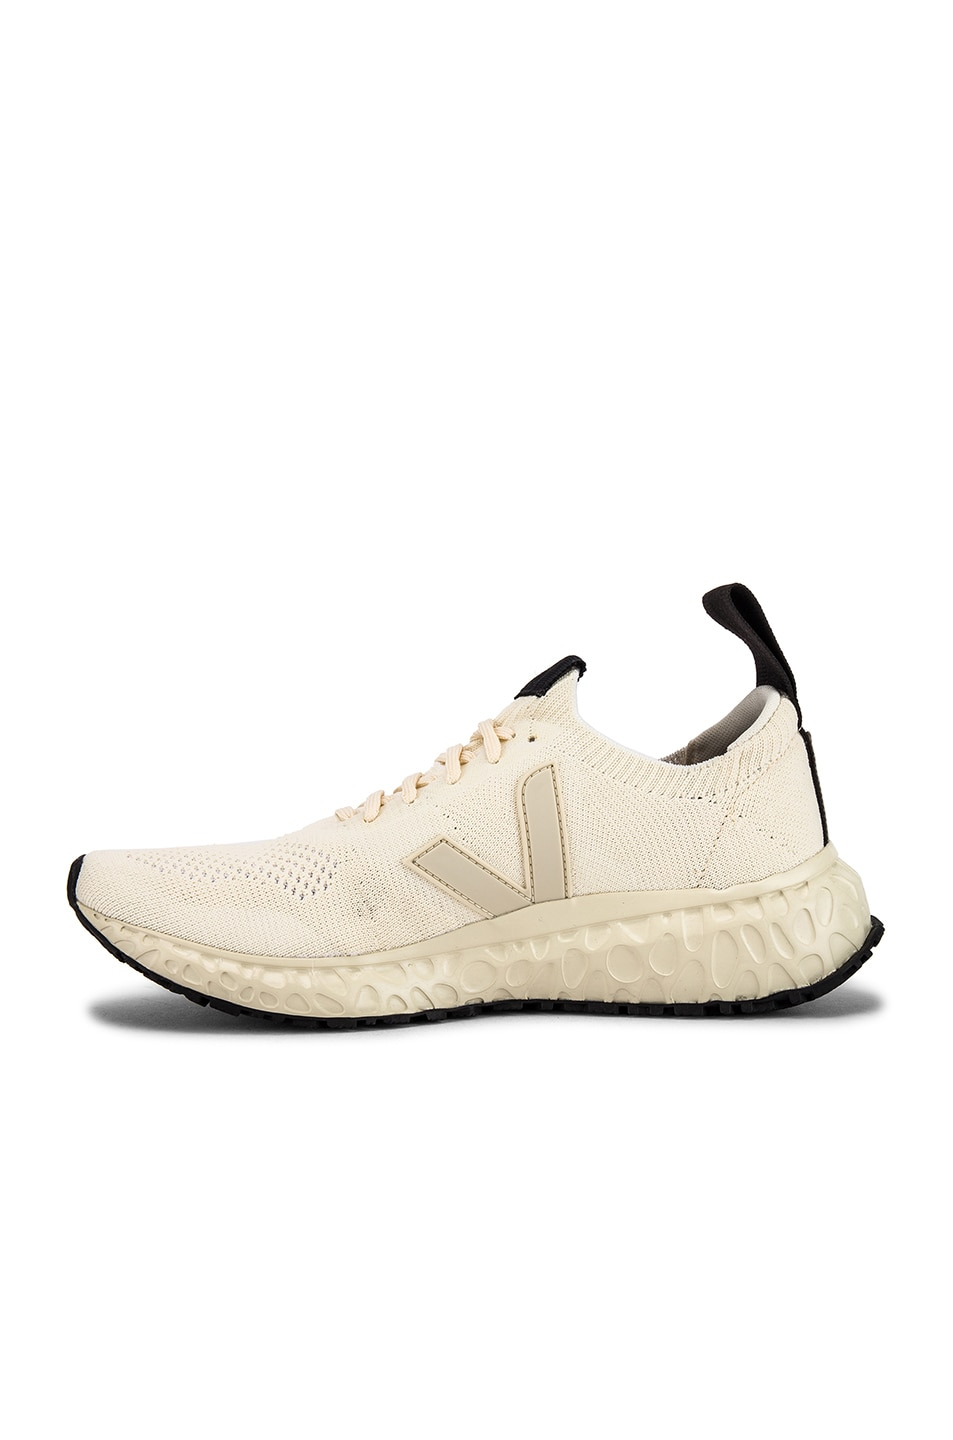 Image 5 of Rick Owens x Veja Sneakers in White in Wite